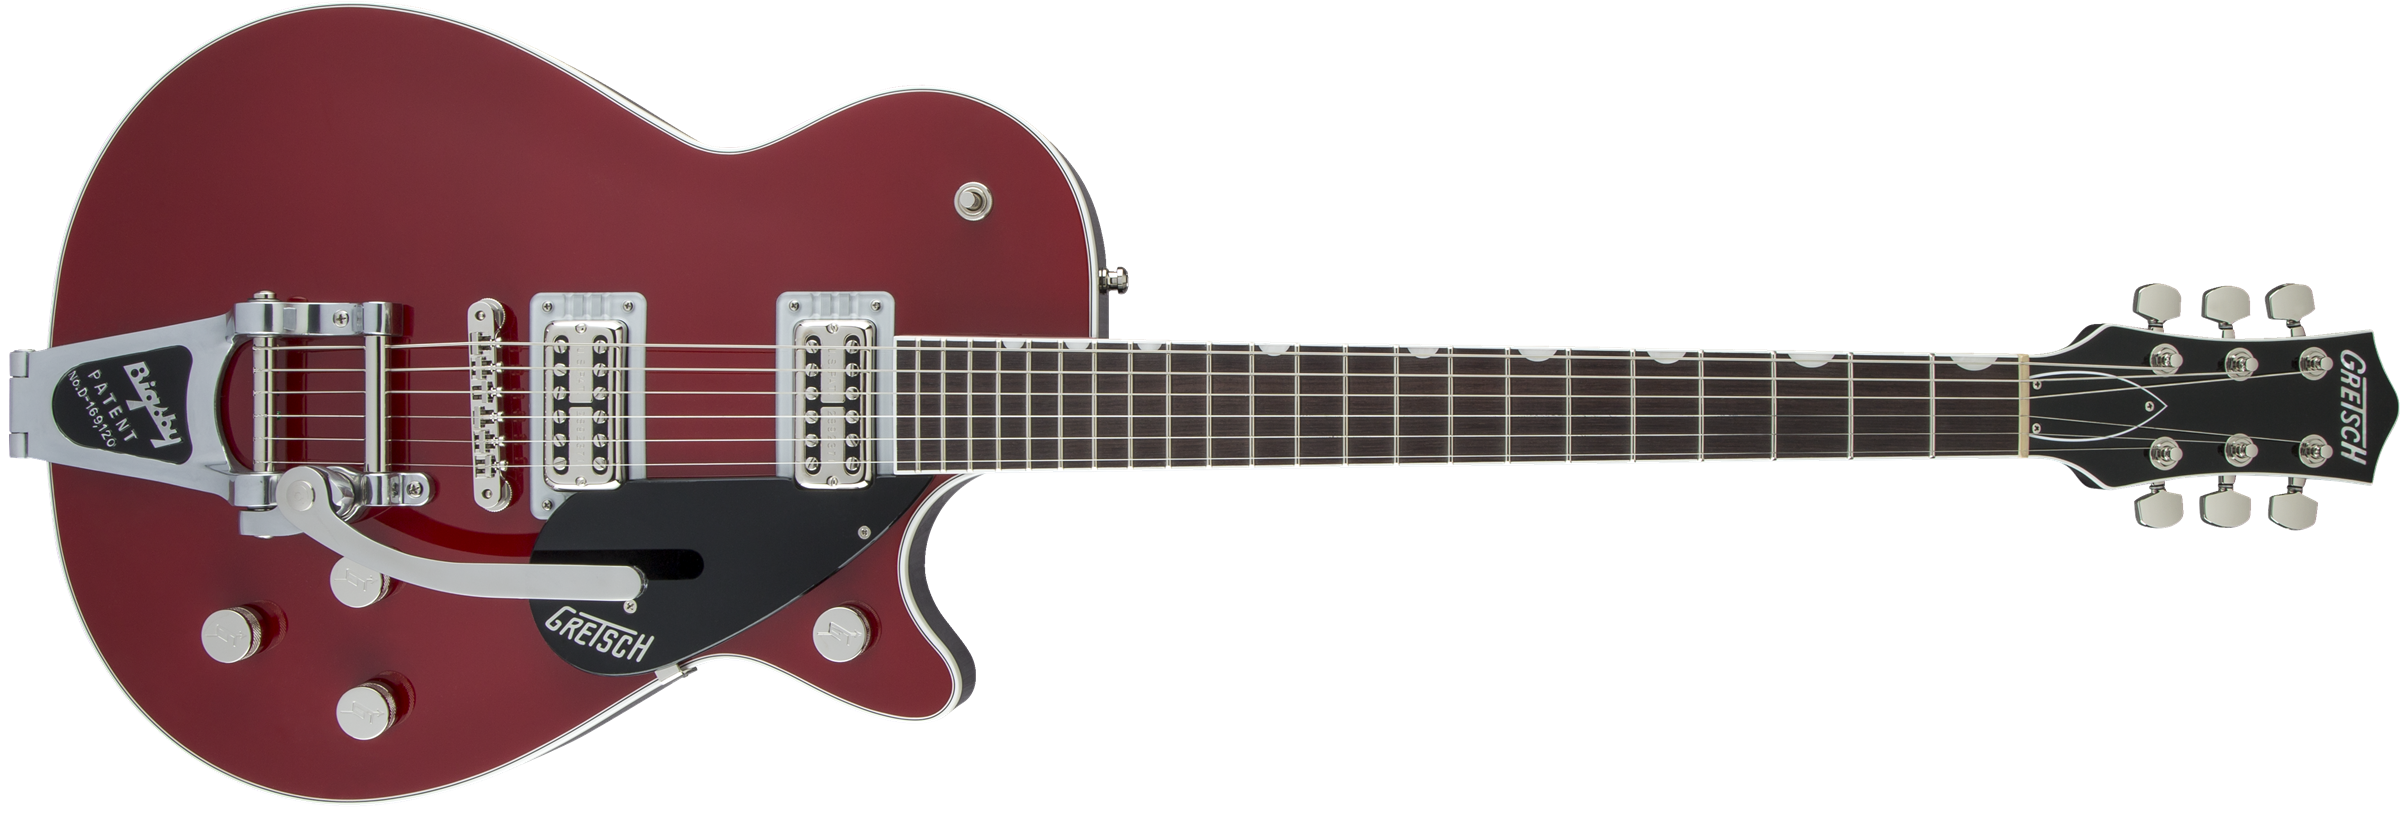 GRETSCH-G6131T-Players-Edition-Jet-FT-with-Bigsby-Rosewood-Fingerboard-Firebird-Red-sku-571001214